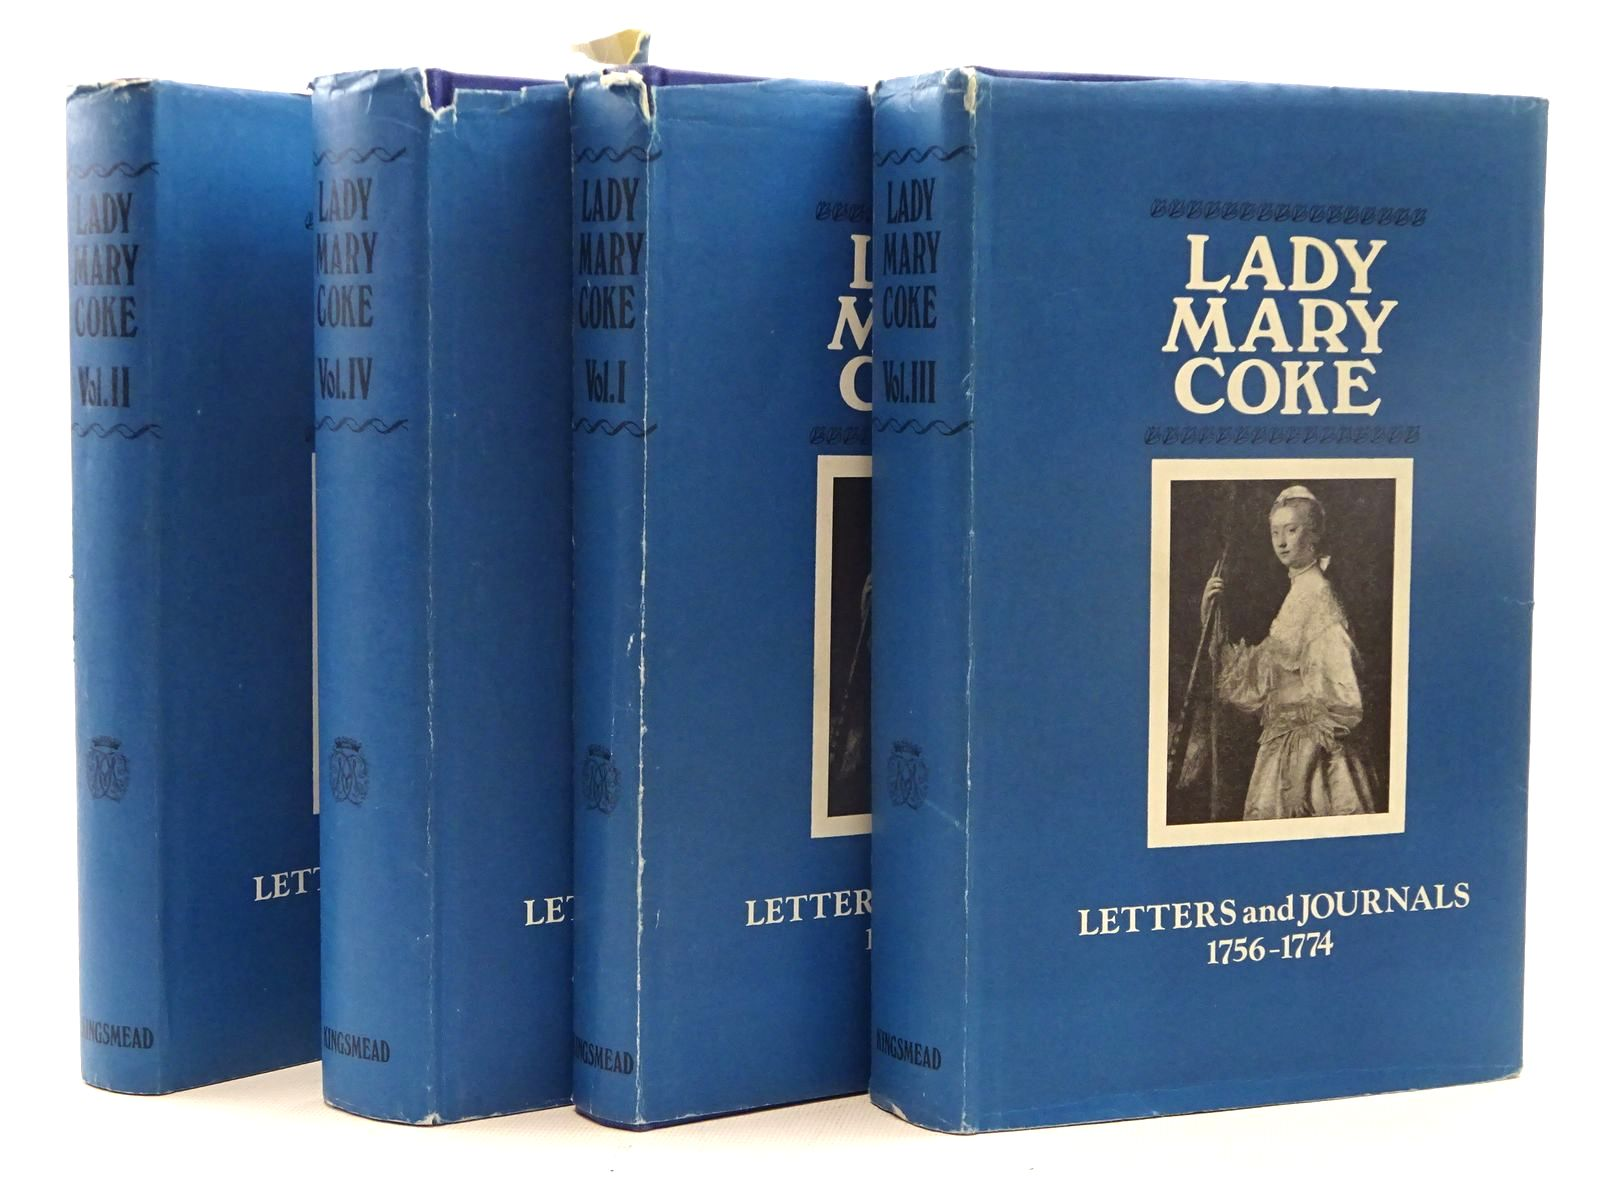 Photo of THE LETTERS AND JOURNALS OF LADY MARY COKE 4 VOLUMES written by Coke, Mary published by Kingsmead Reprints (STOCK CODE: 2125569)  for sale by Stella & Rose's Books